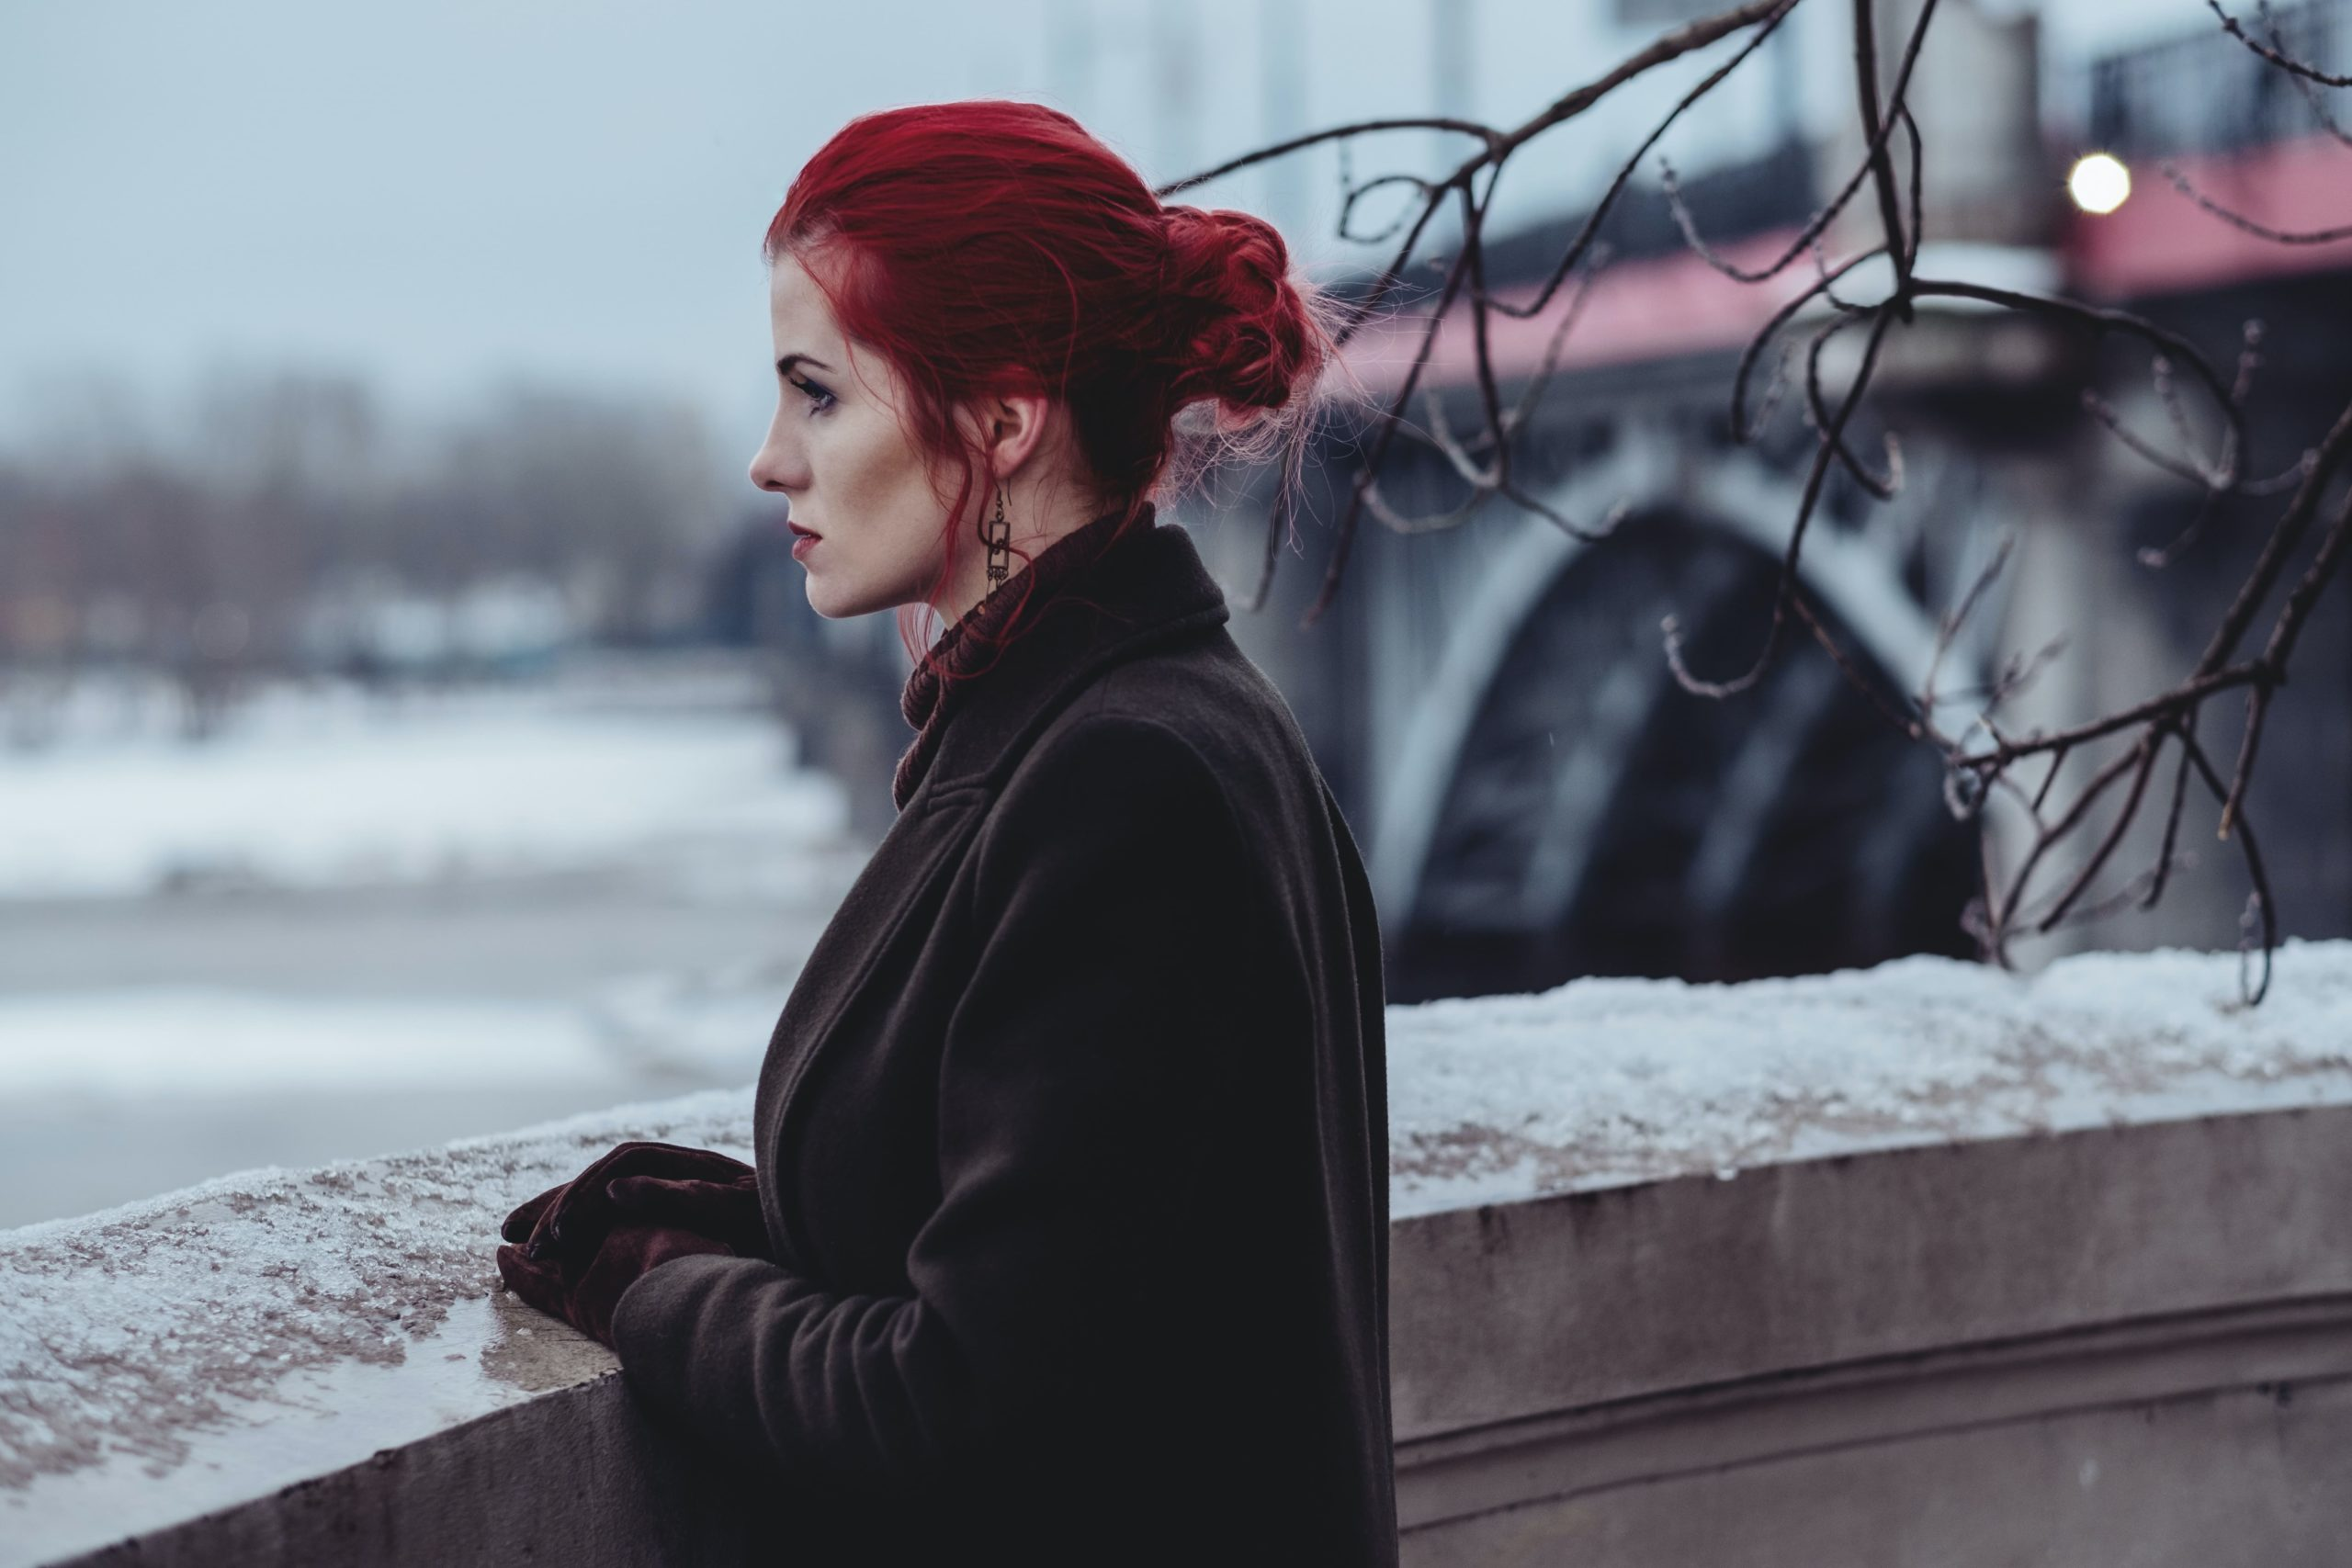 woman with dyed colourful red hair, looks over a wall into water, with a bridge behind her.